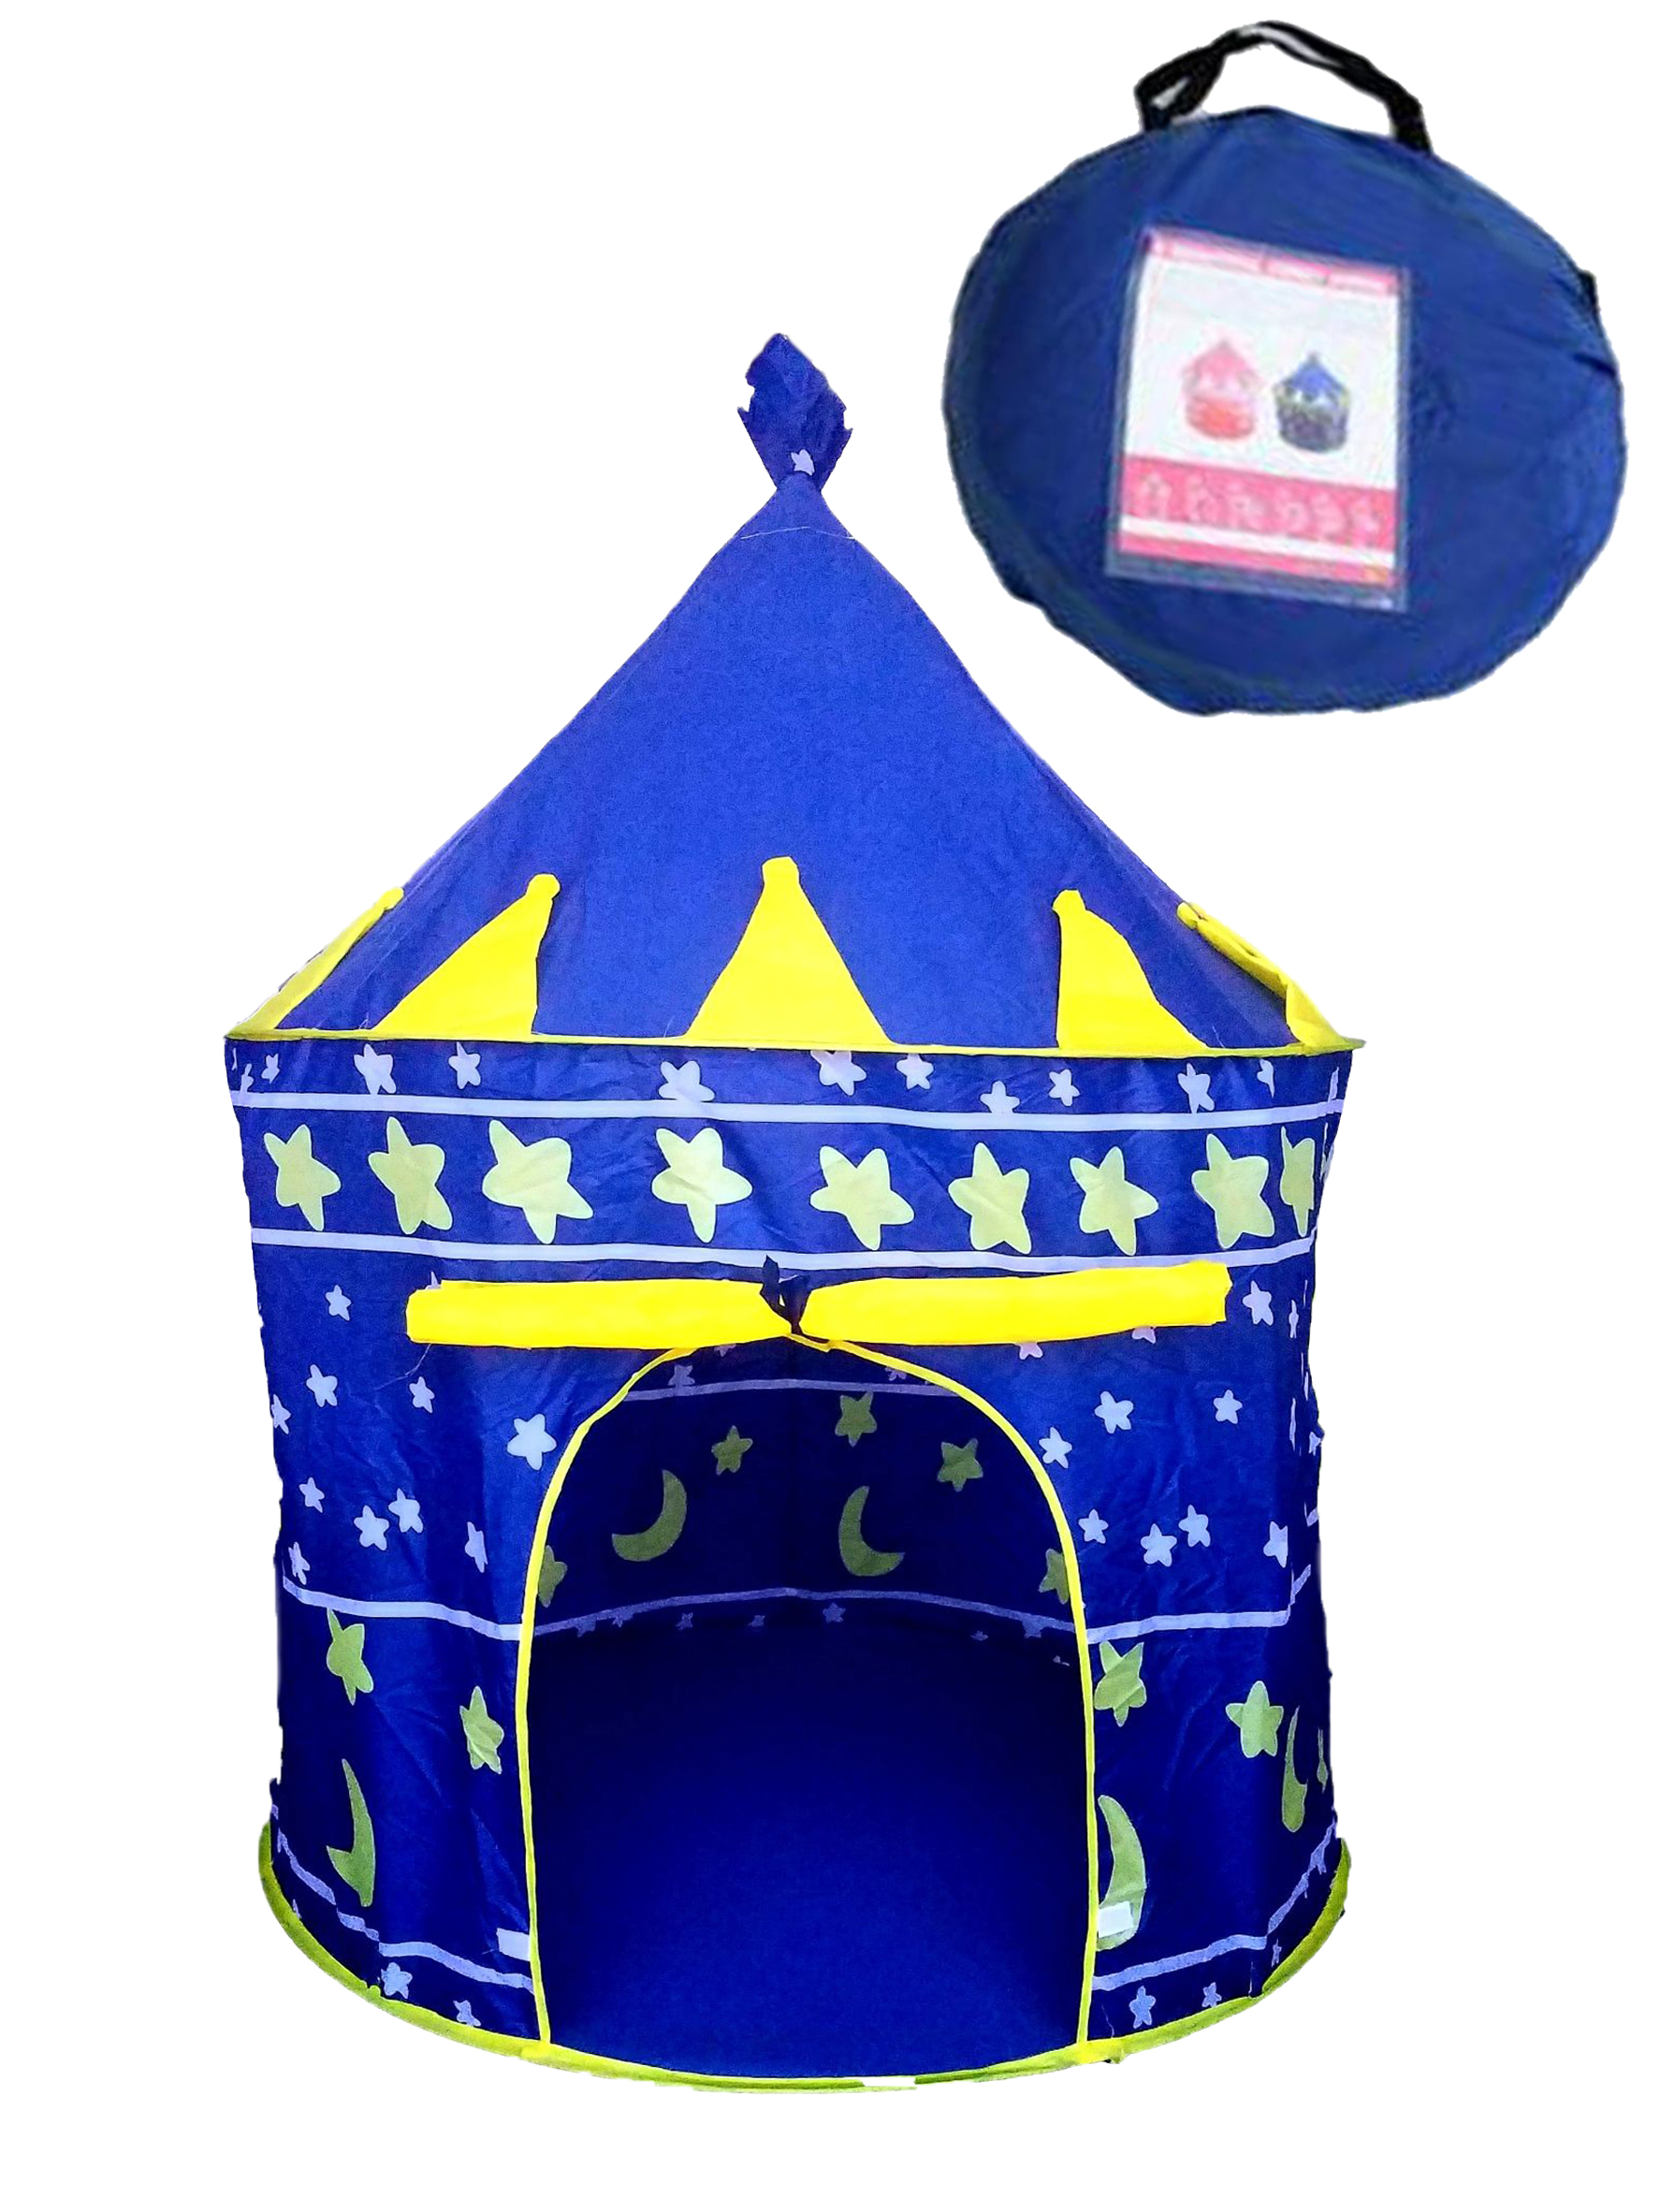 TOY 008 TENT KIDS BLUE